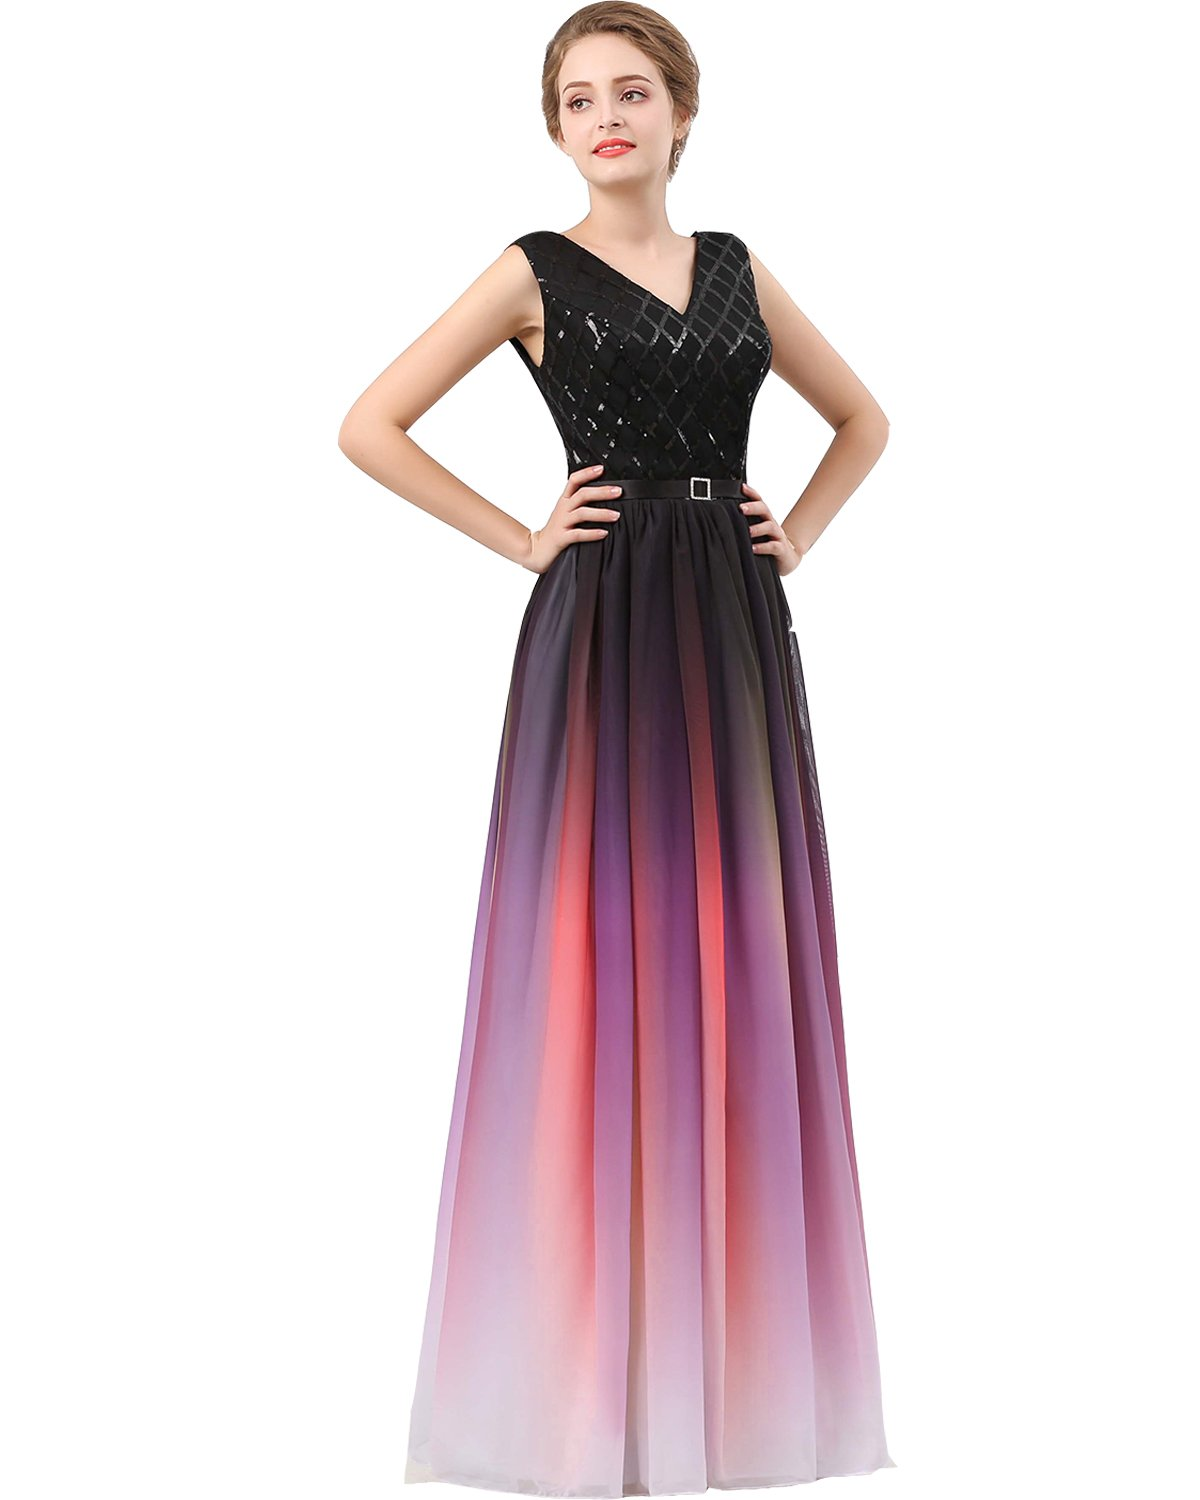 Plus Size Black Sequined Ombre Chiffon Gradient Prom Evening Dress Purple  US 18W